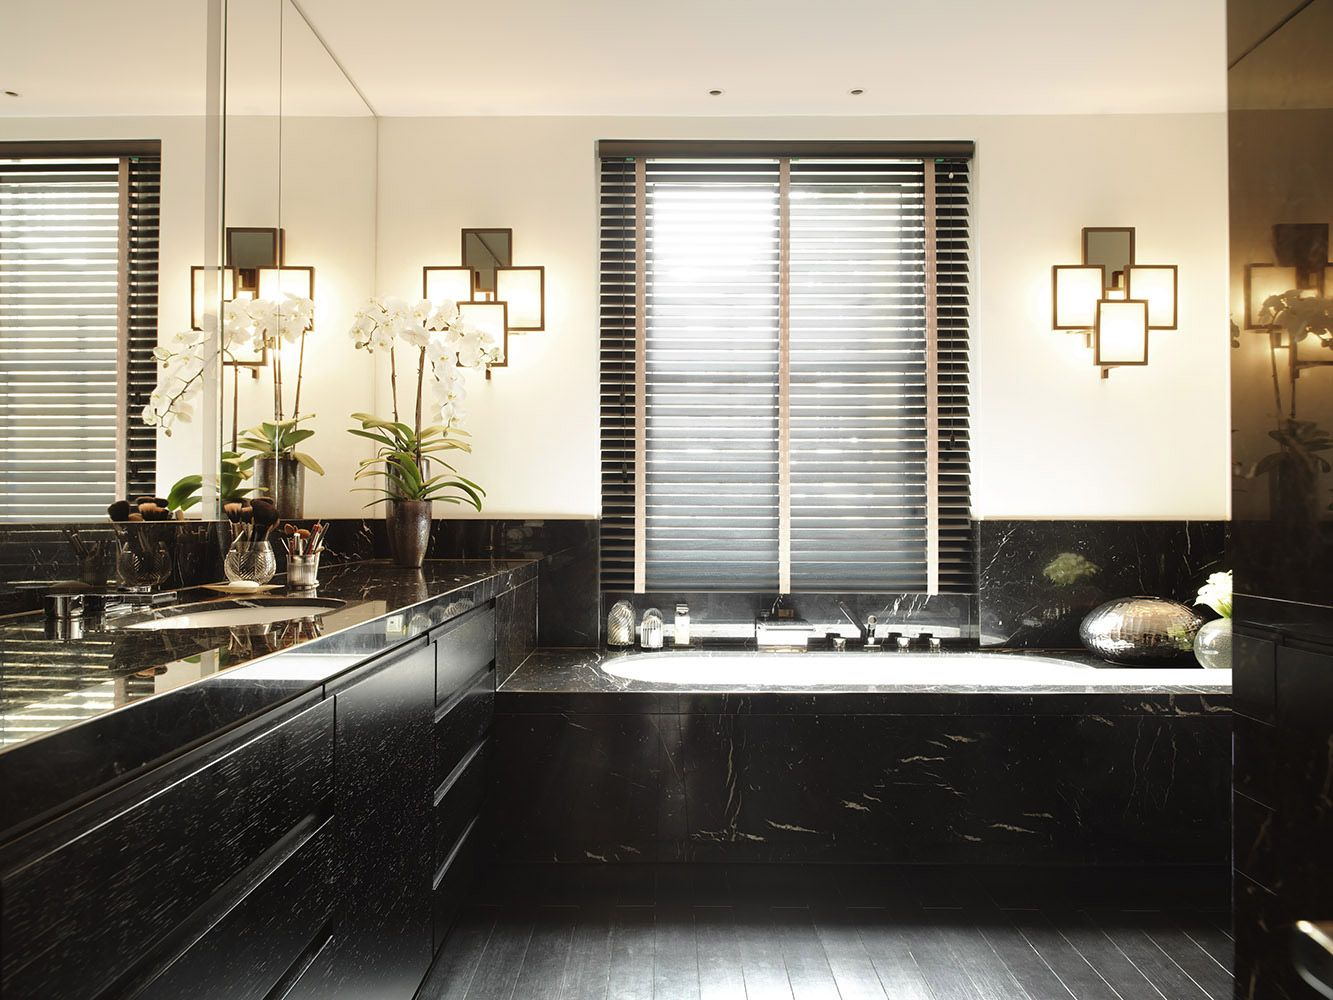 Top 10 Kelly Hoppen Design Ideas | Kelly hoppen, Townhouse and Interiors